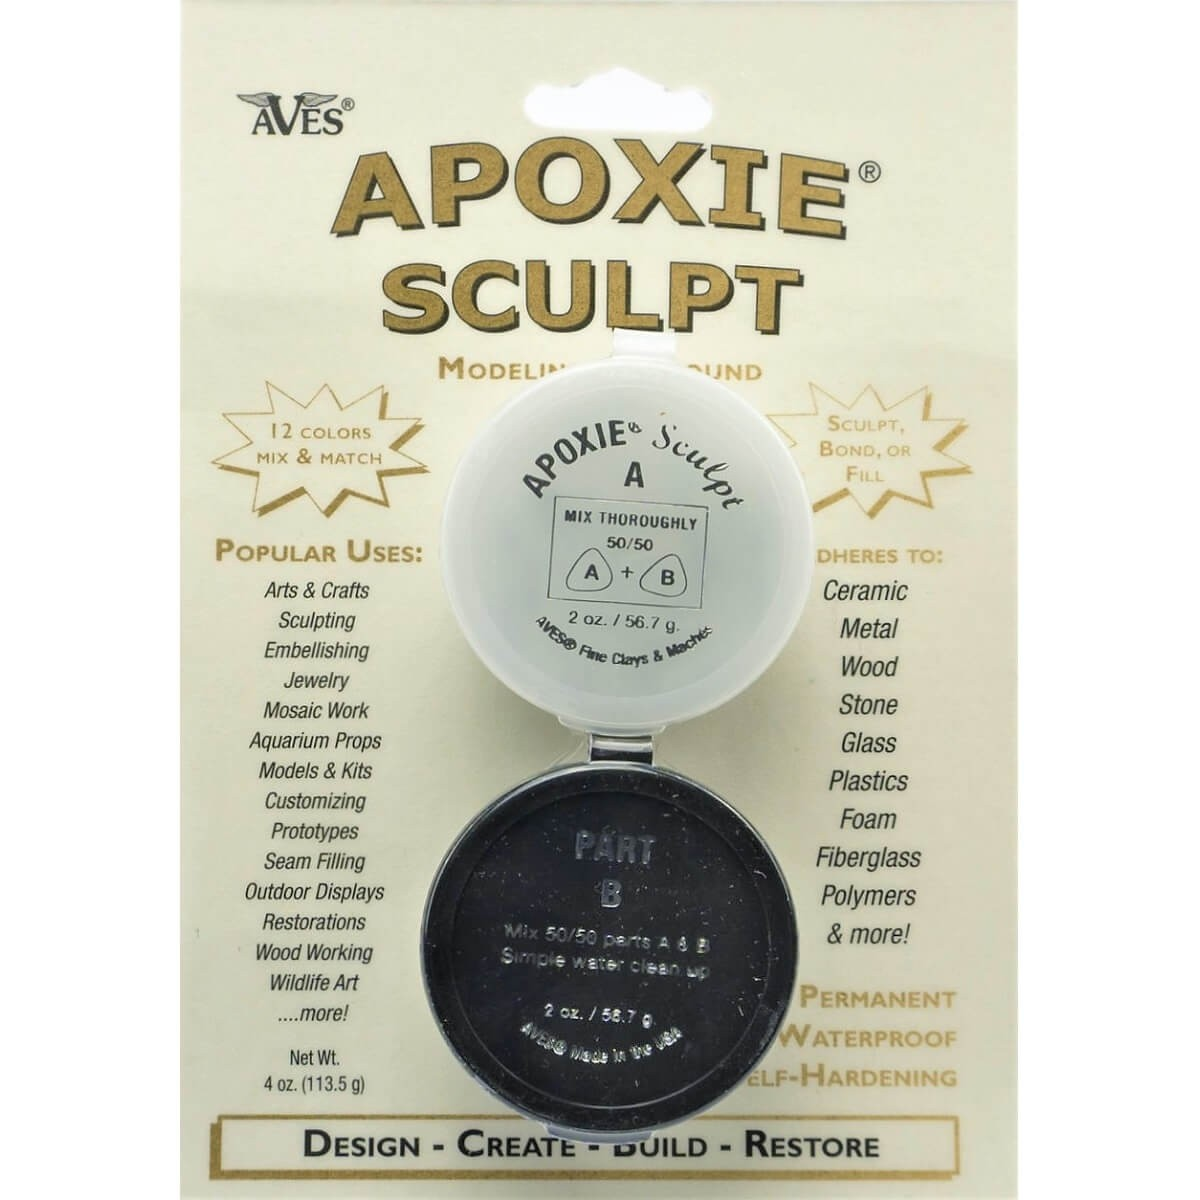 Aves Apoxie Sculpt White Two Part Self-Hardening Adhesive